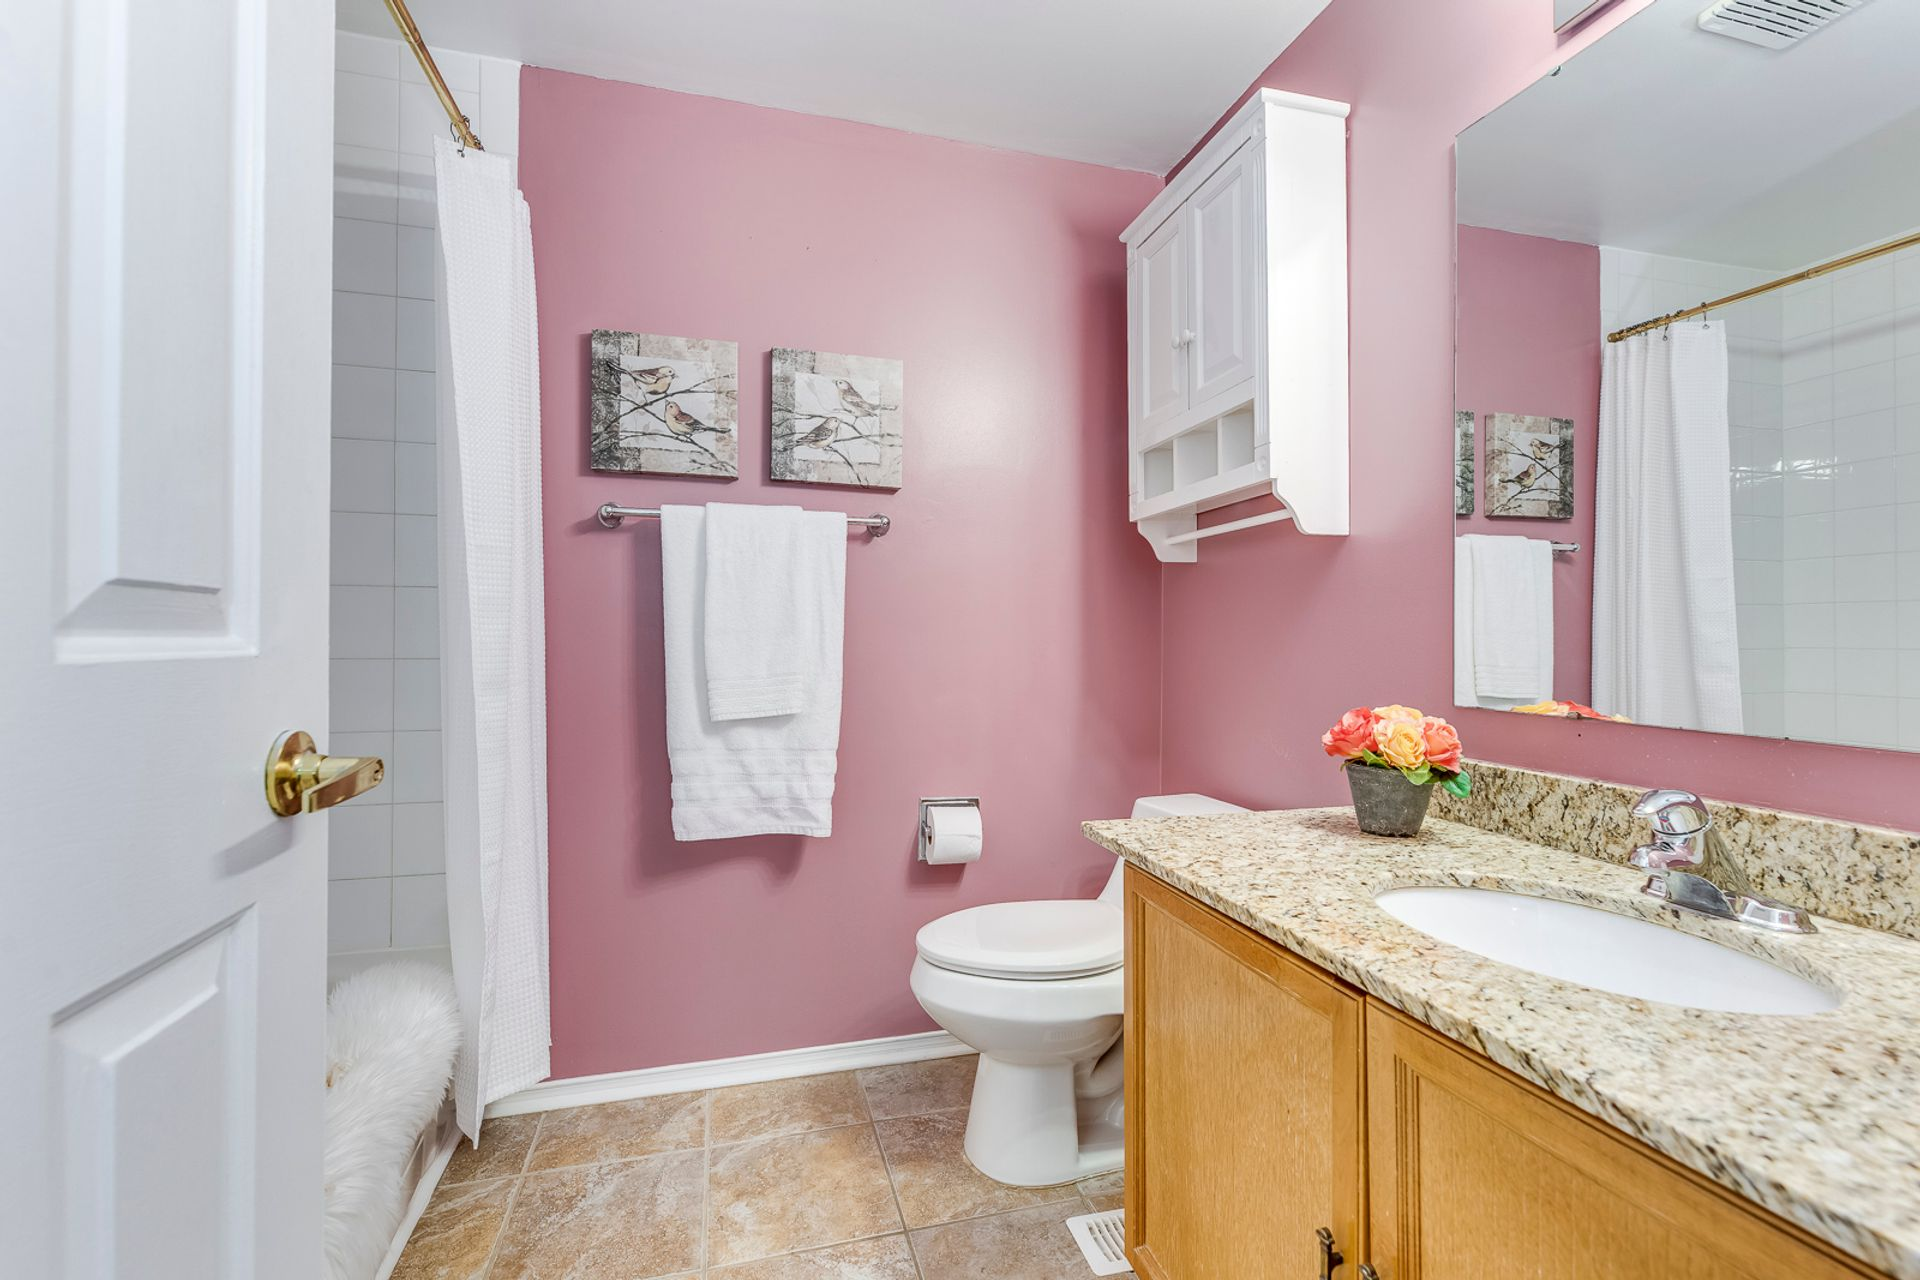 Primary Ensuite - 33 - 4605 Donegal Dr, Mississauga - Elite3 & Team at 33 - 4605 Donegal Drive, Erin Mills, Mississauga